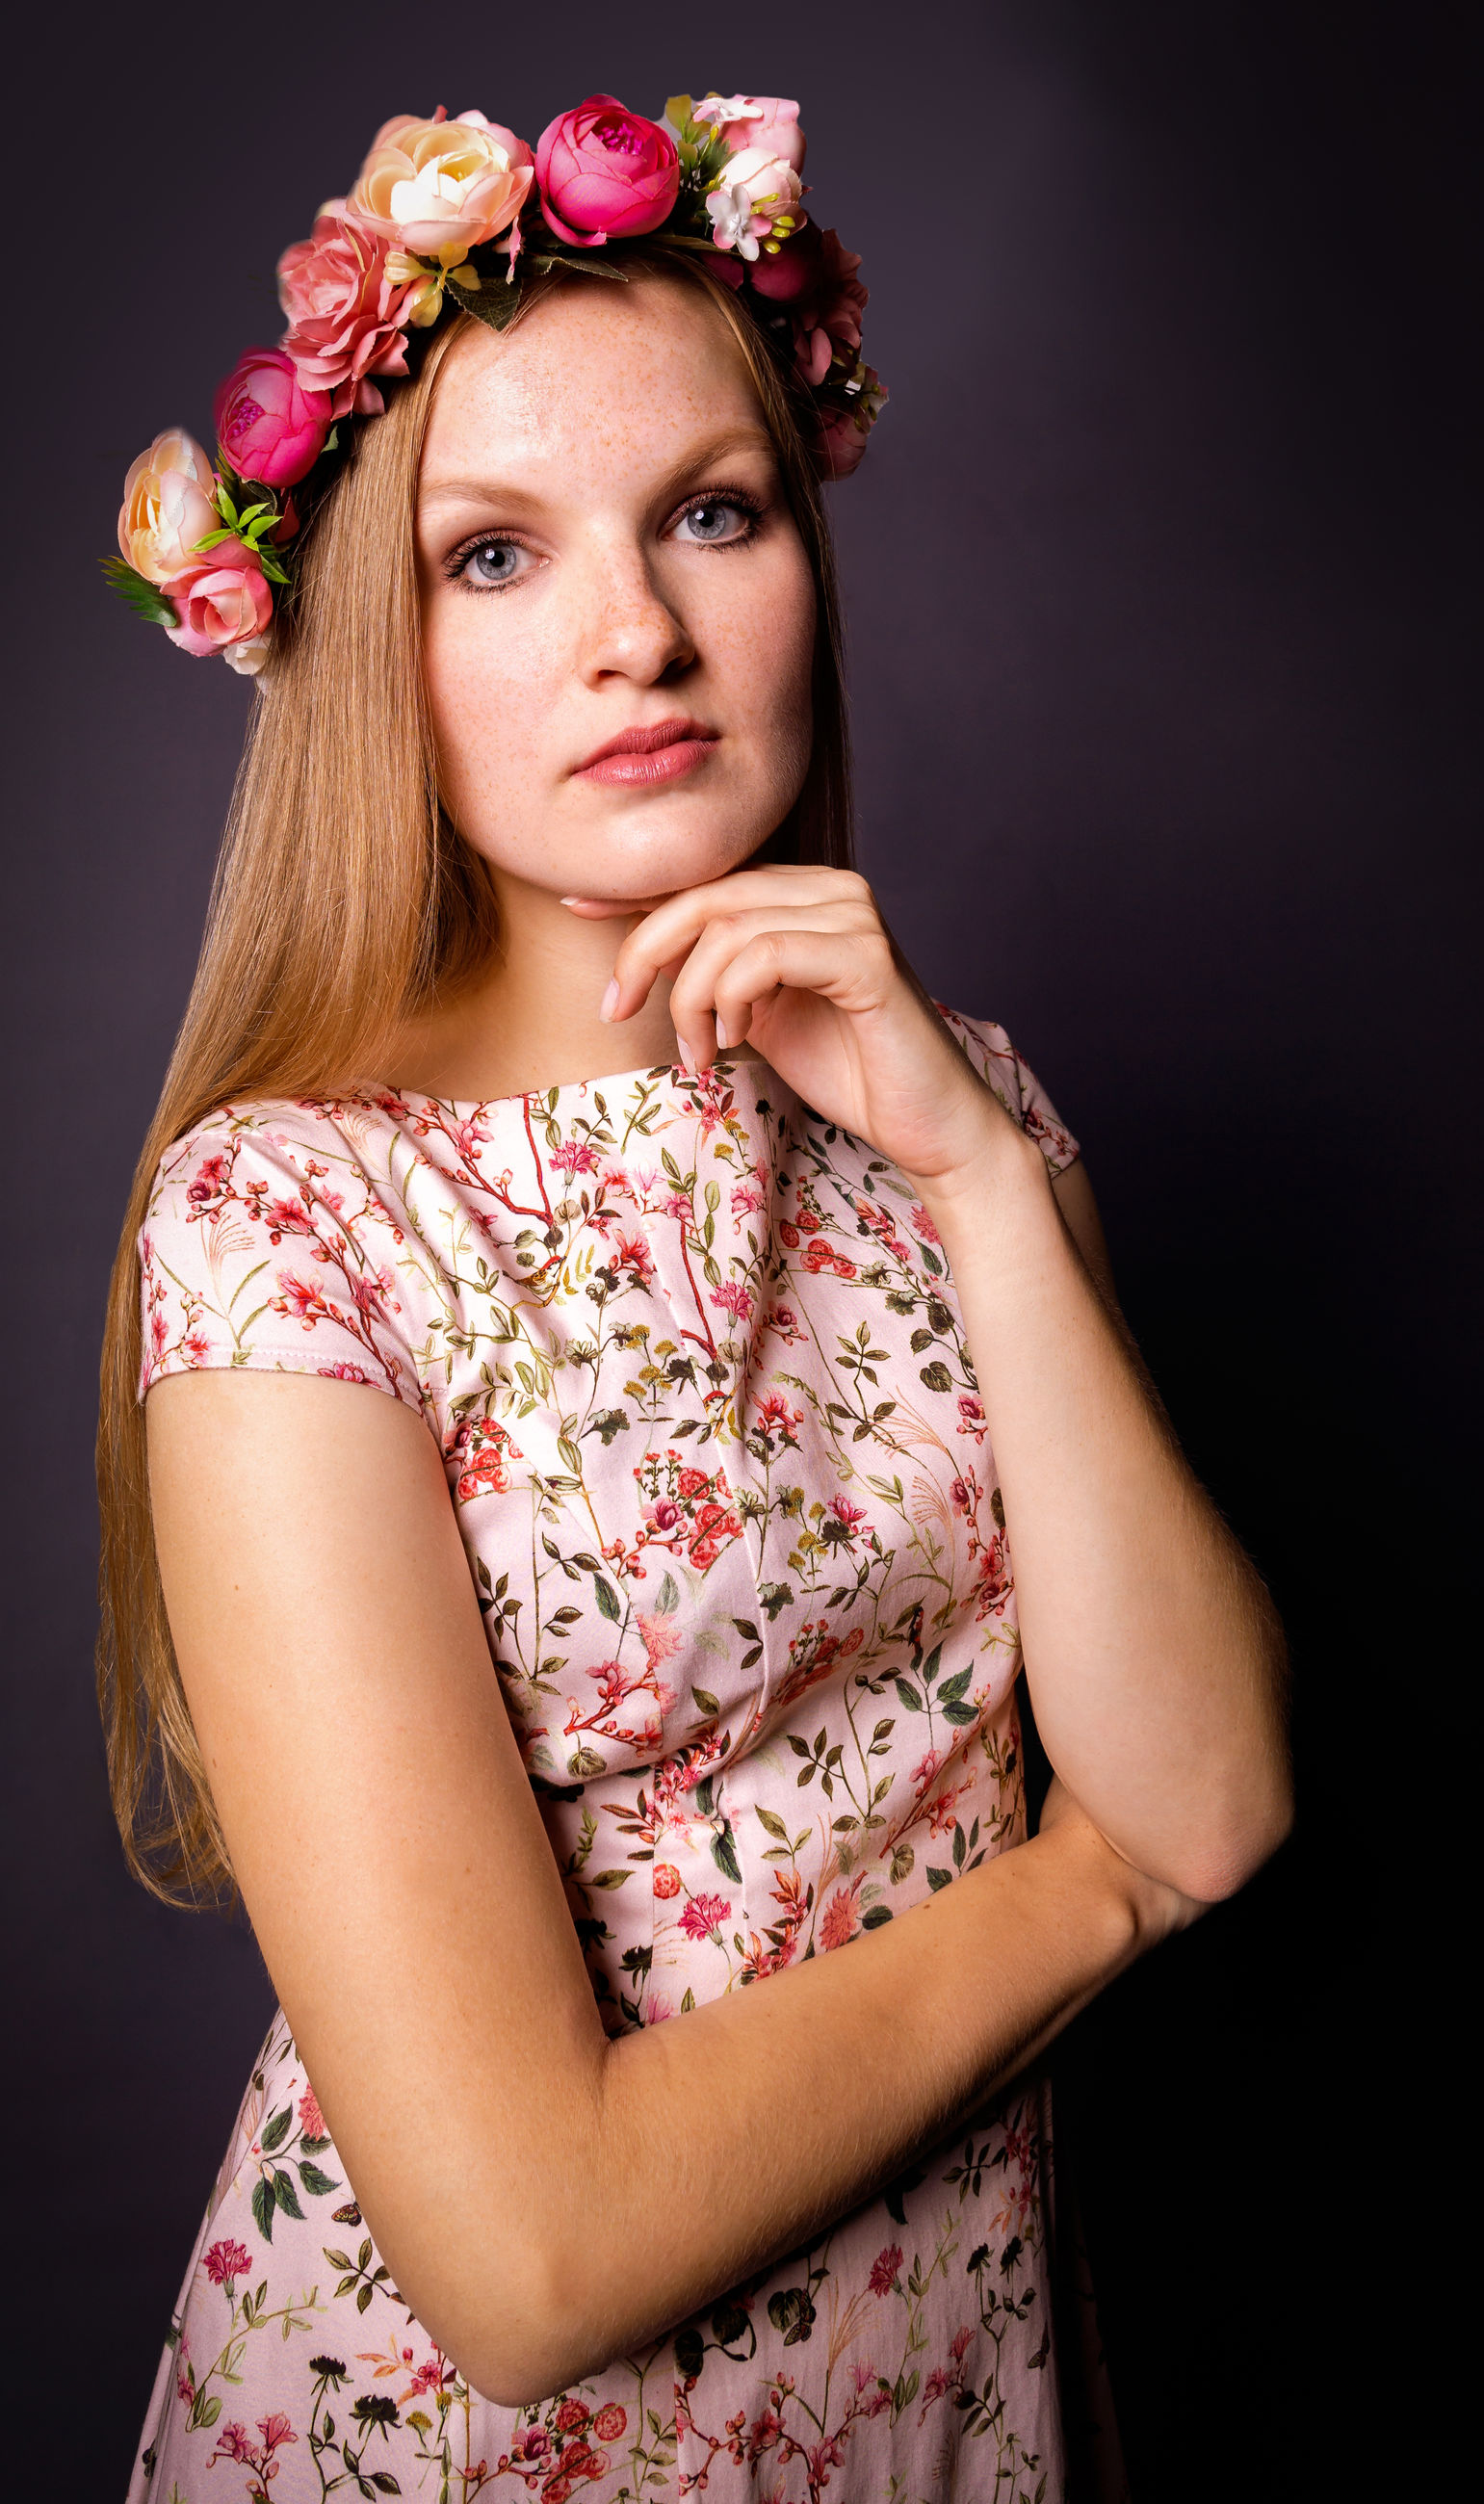 Portrait of beautiful young woman wearing flower tiara against gray background